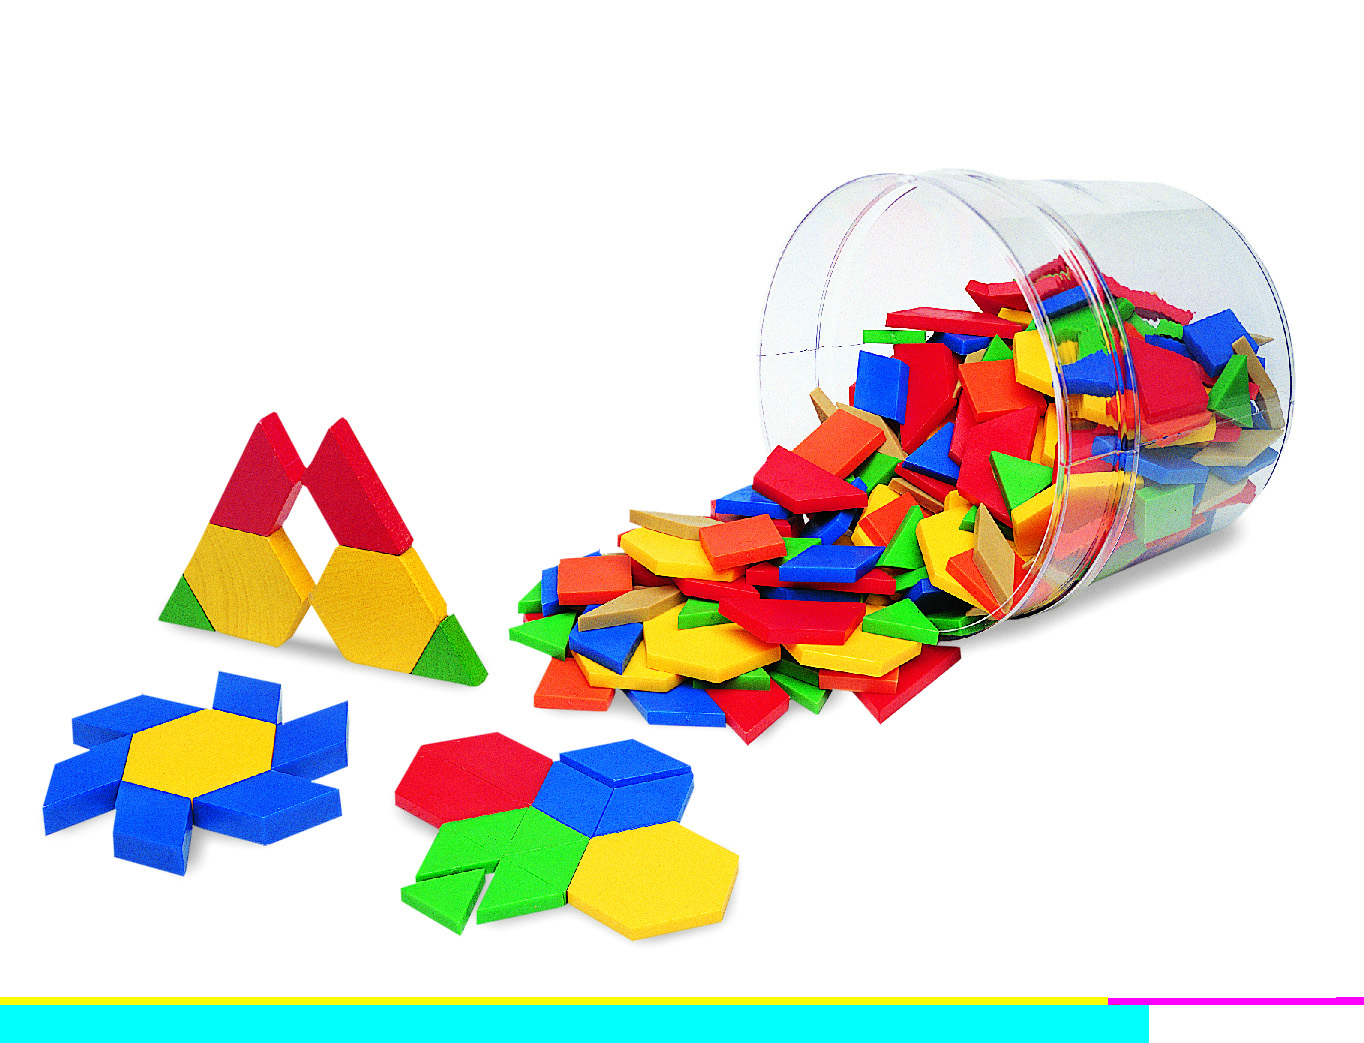 B F Cd Dfc Dc Bf Ed D likewise Shapes Tracing X moreover Saxonmathk Meetingb together with Th Grade Reading Worksheets in addition Halloween Montessori Activities. on balance math printable